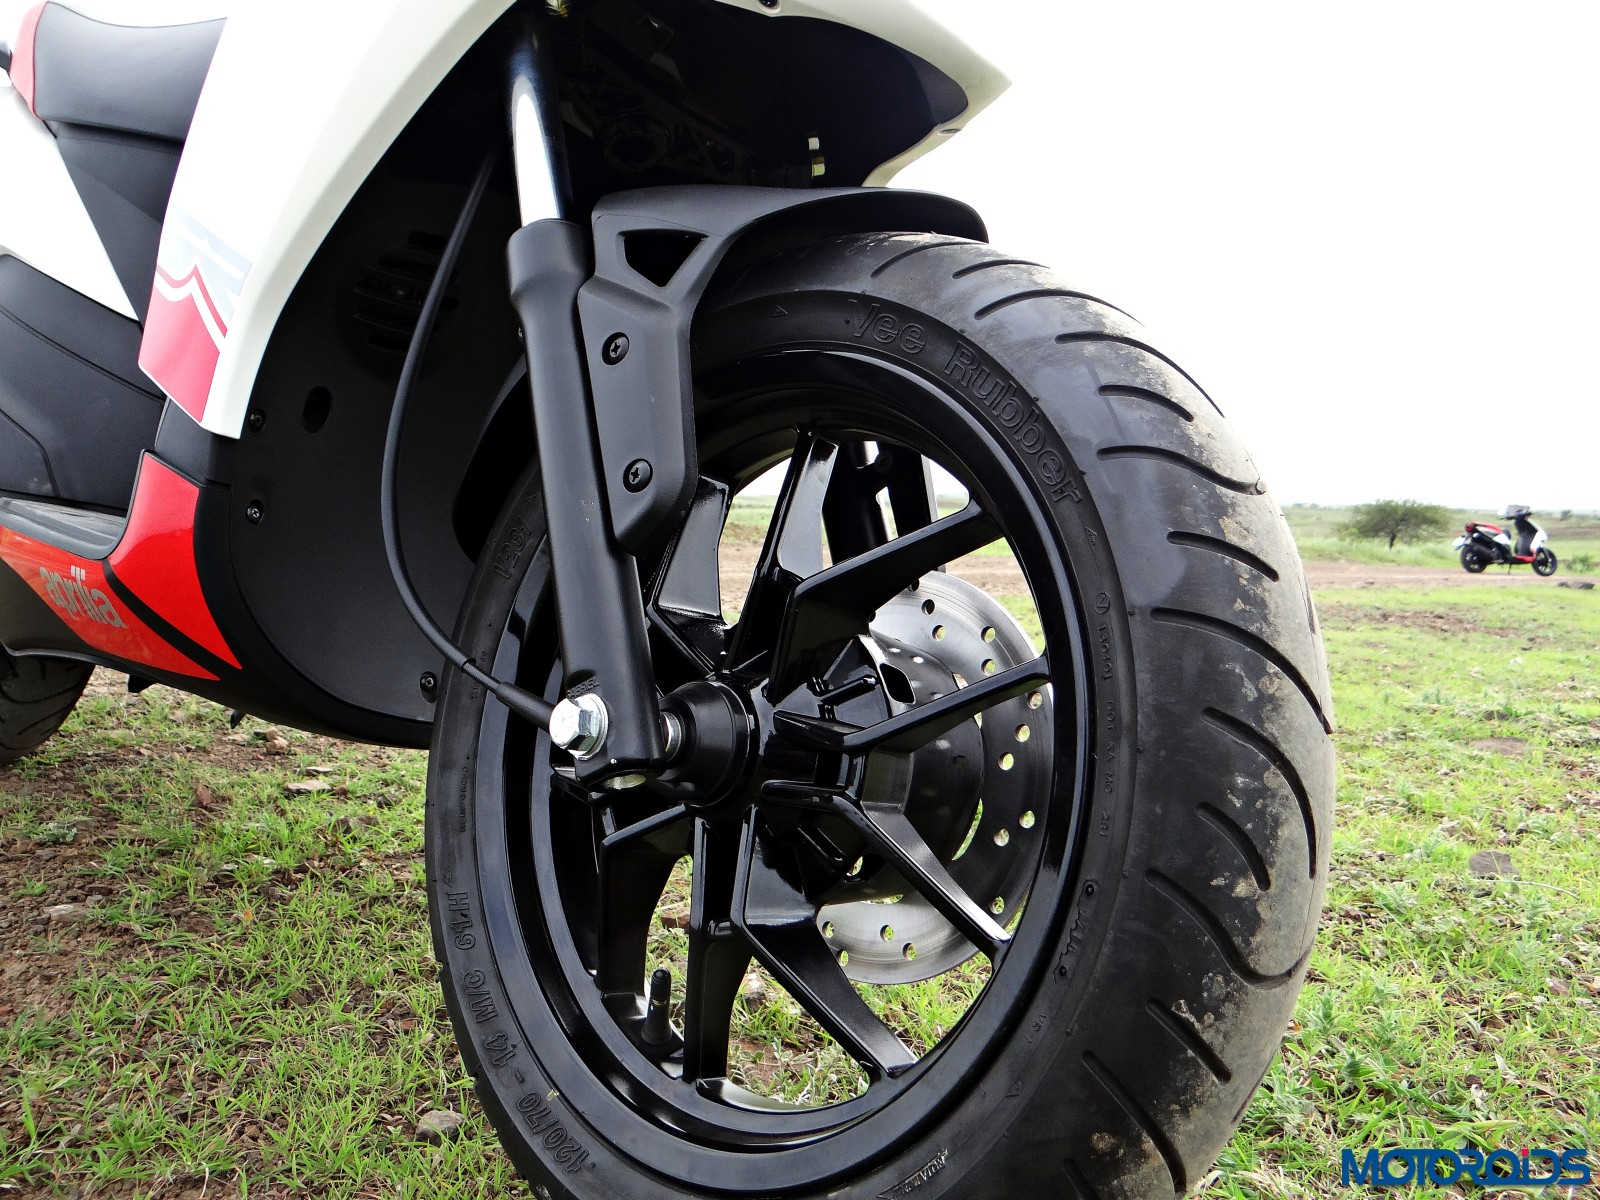 Aprilia SR 150 Review - Details - Wheels (2)